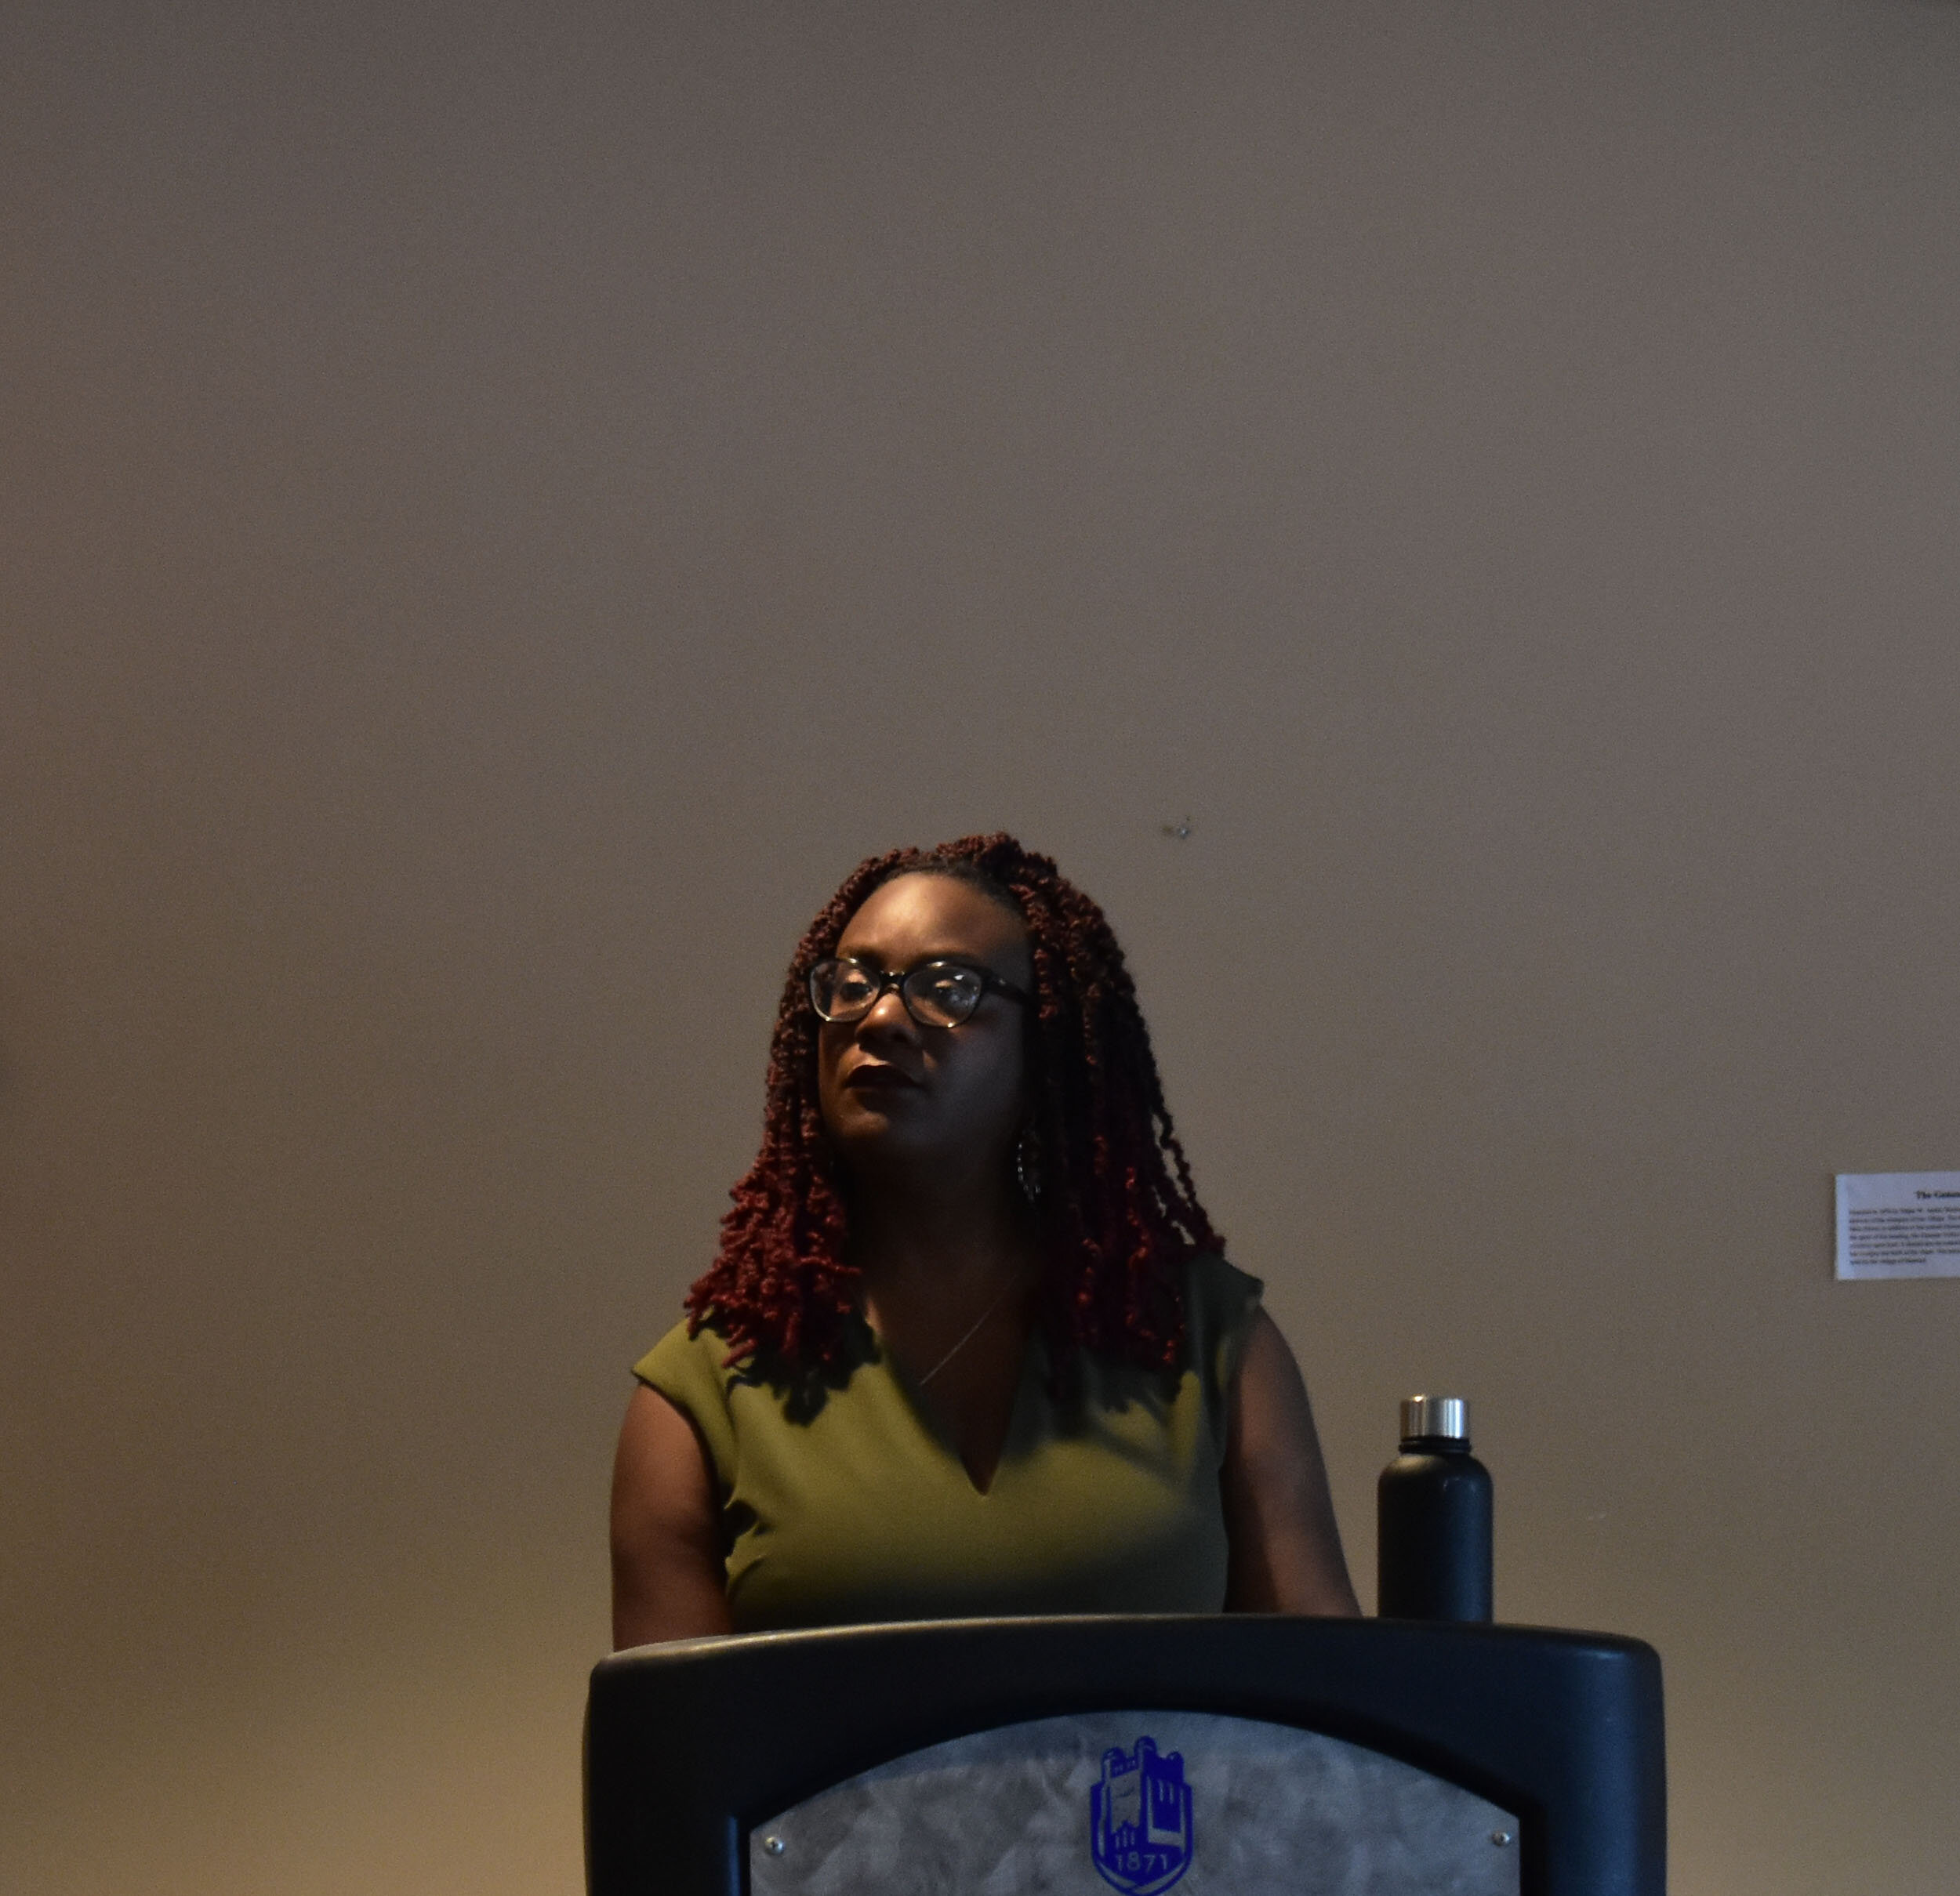 Alumna Aisha K. O'Mally '01 discussed her experience as a student at Geneseo during the All-College Hour lecture series on Wednesday Oct. 2. During her junior year, she encountered severe health problems that have since taught her to both appreciate and find meaning in life (Xavier Delcid/photo editor).